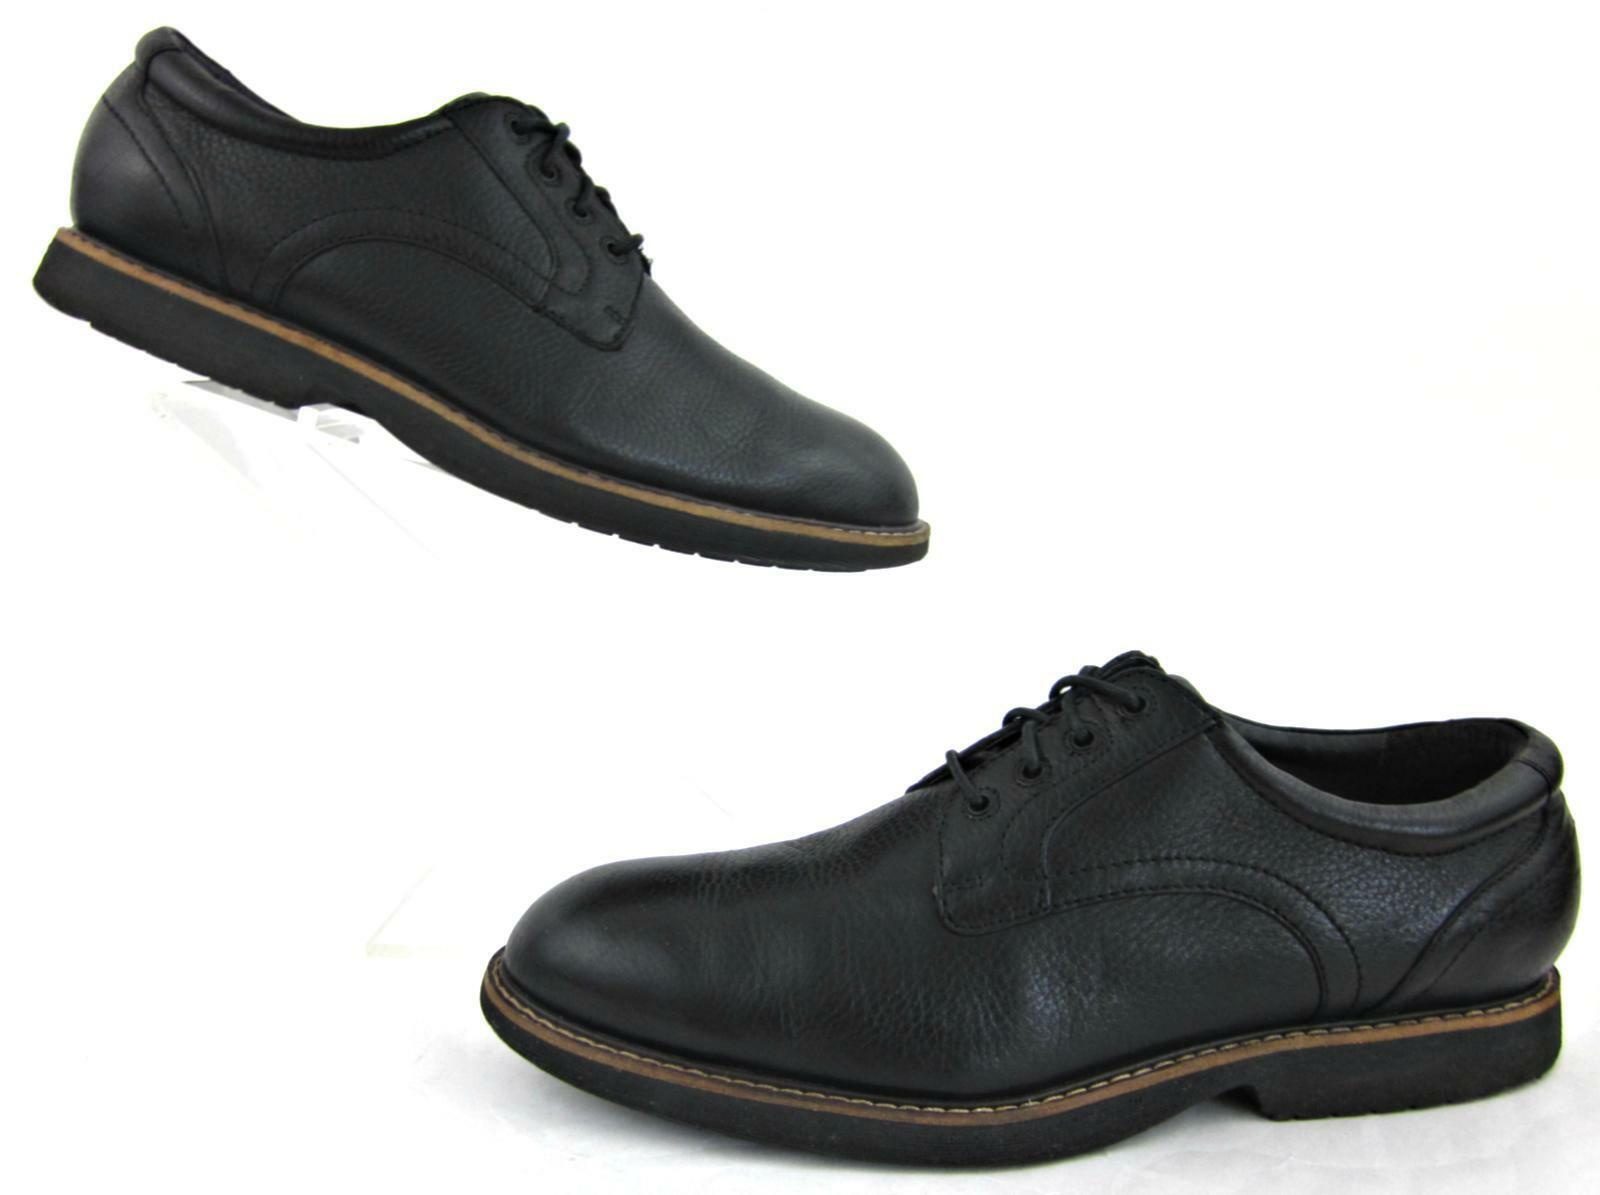 ABEO Newland Plain Toe Oxford shoes Black Leather Neutral Footbed    US 10.5